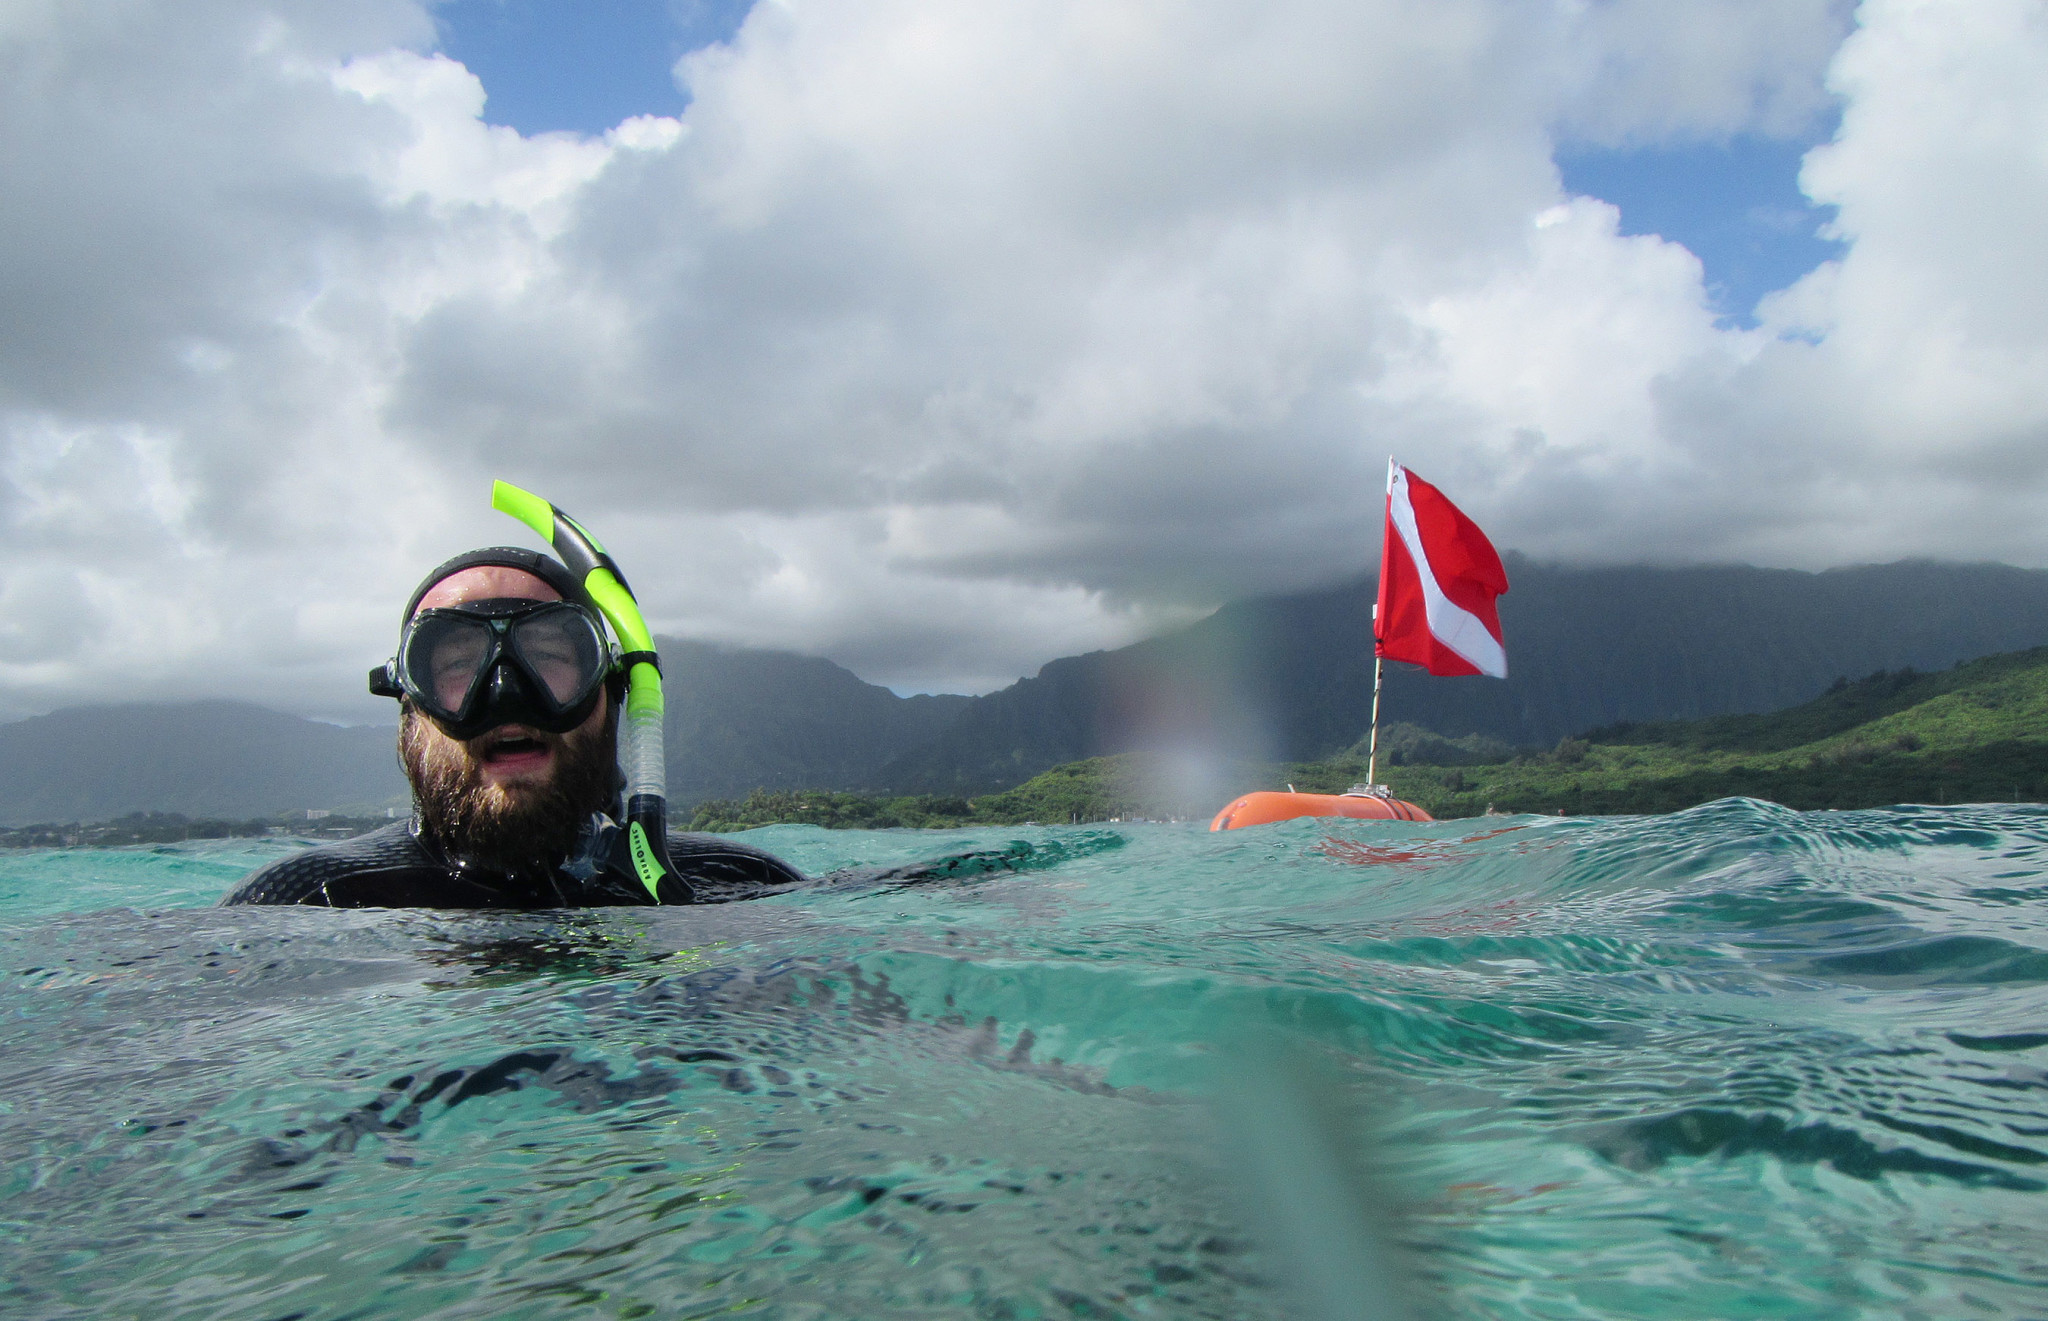 <p>DLNR fishery technician Daniel Lager provided an underwater tour of Kaneohe Bay's coral, which has rebounded despite all the environmental stresses it has suffered from pollution, invasive species and climate change. In fact, scientists now believe the stress has made Kaneohe Bay's coral more resilient to future bleaching.</p>